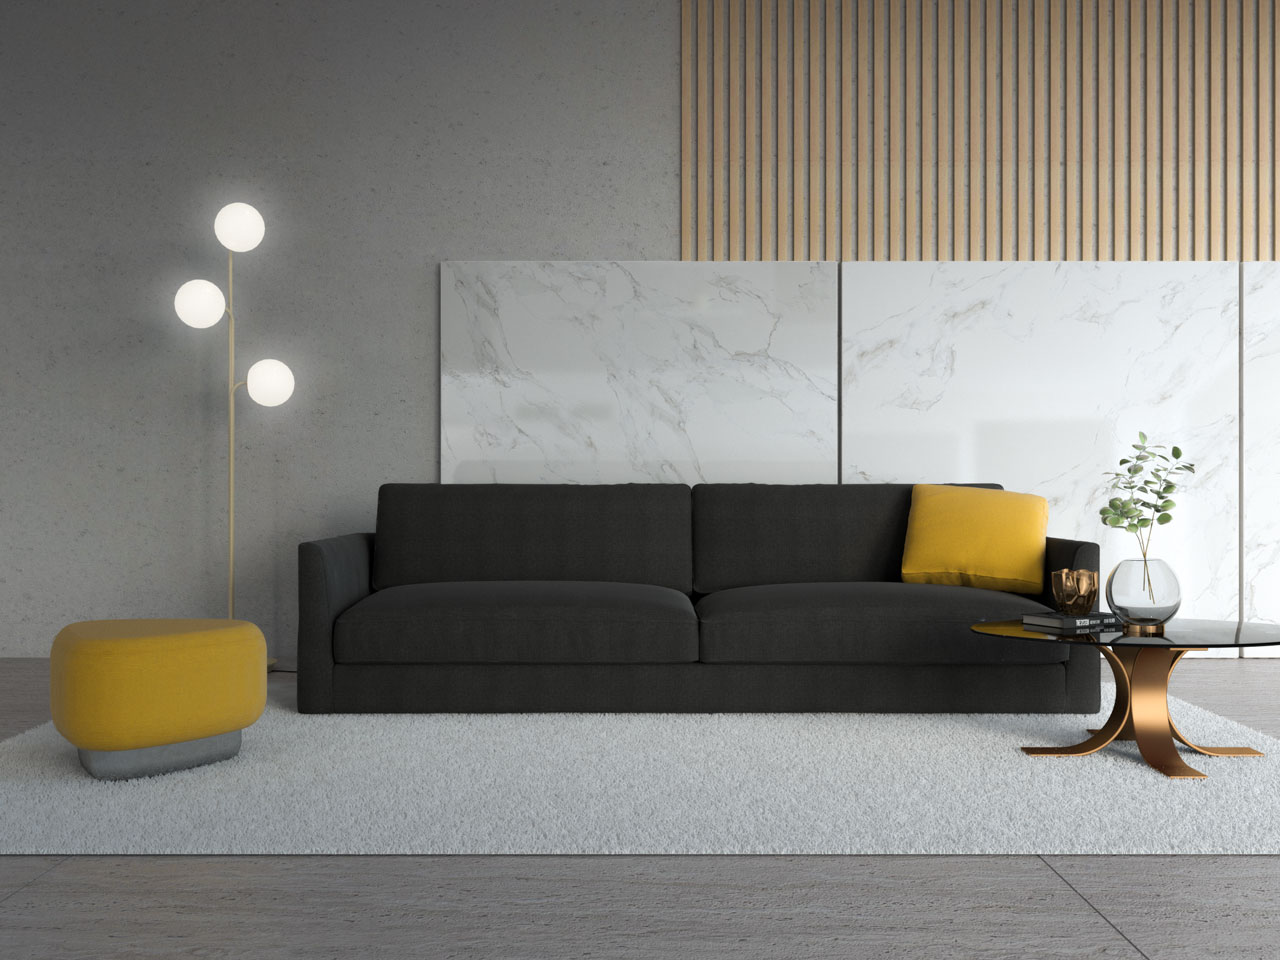 Black couch with yellow ottoman